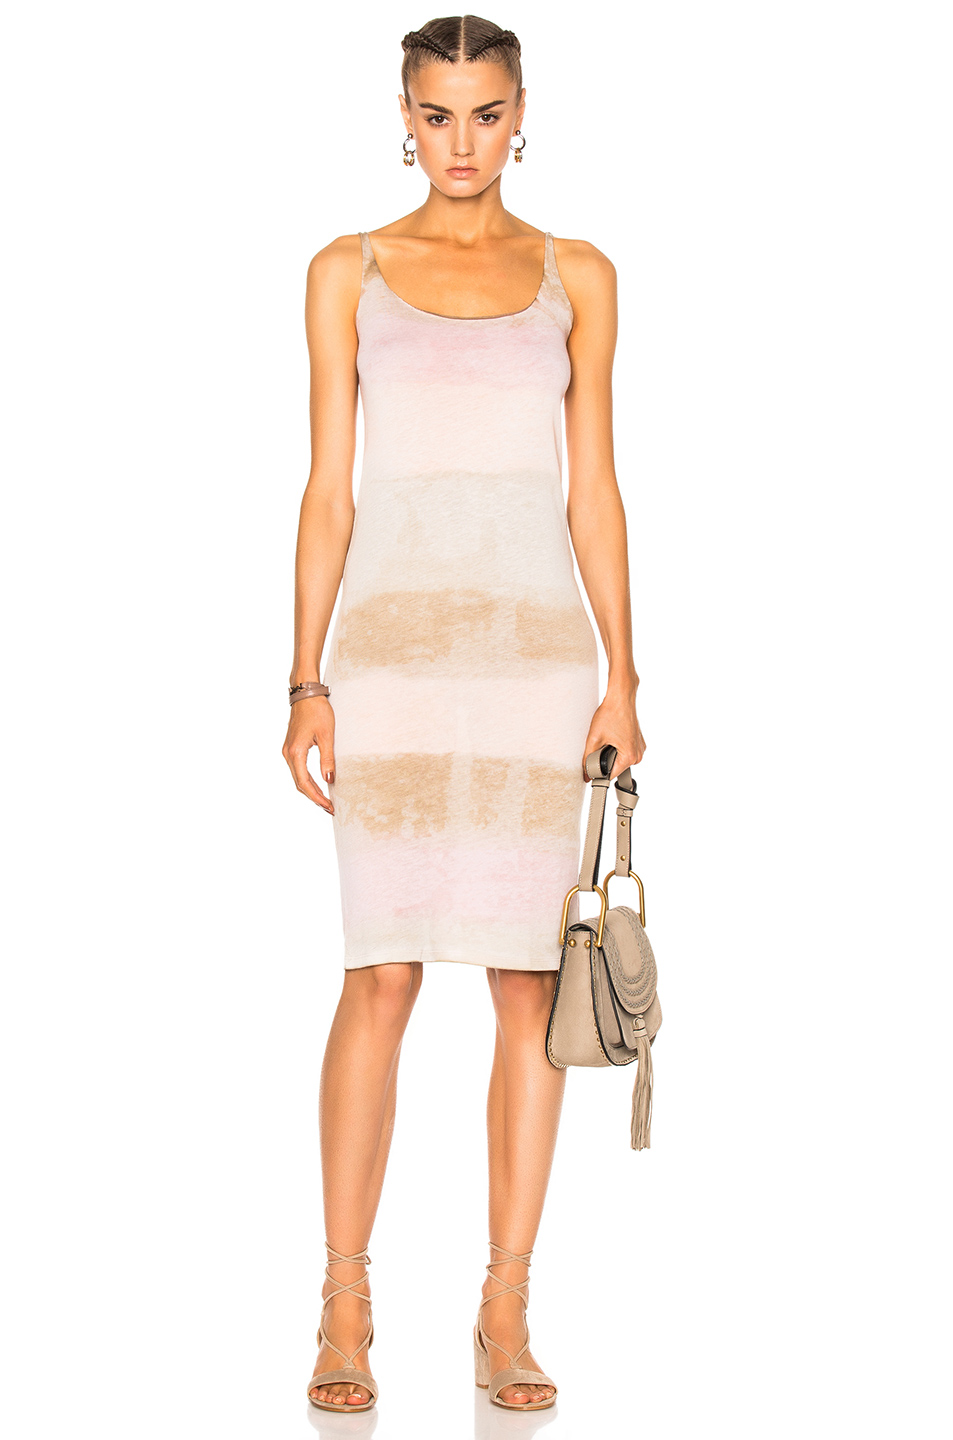 Raquel Allegra Layering Tank Dress in Brown,Ombre & Tie Dye,Pink